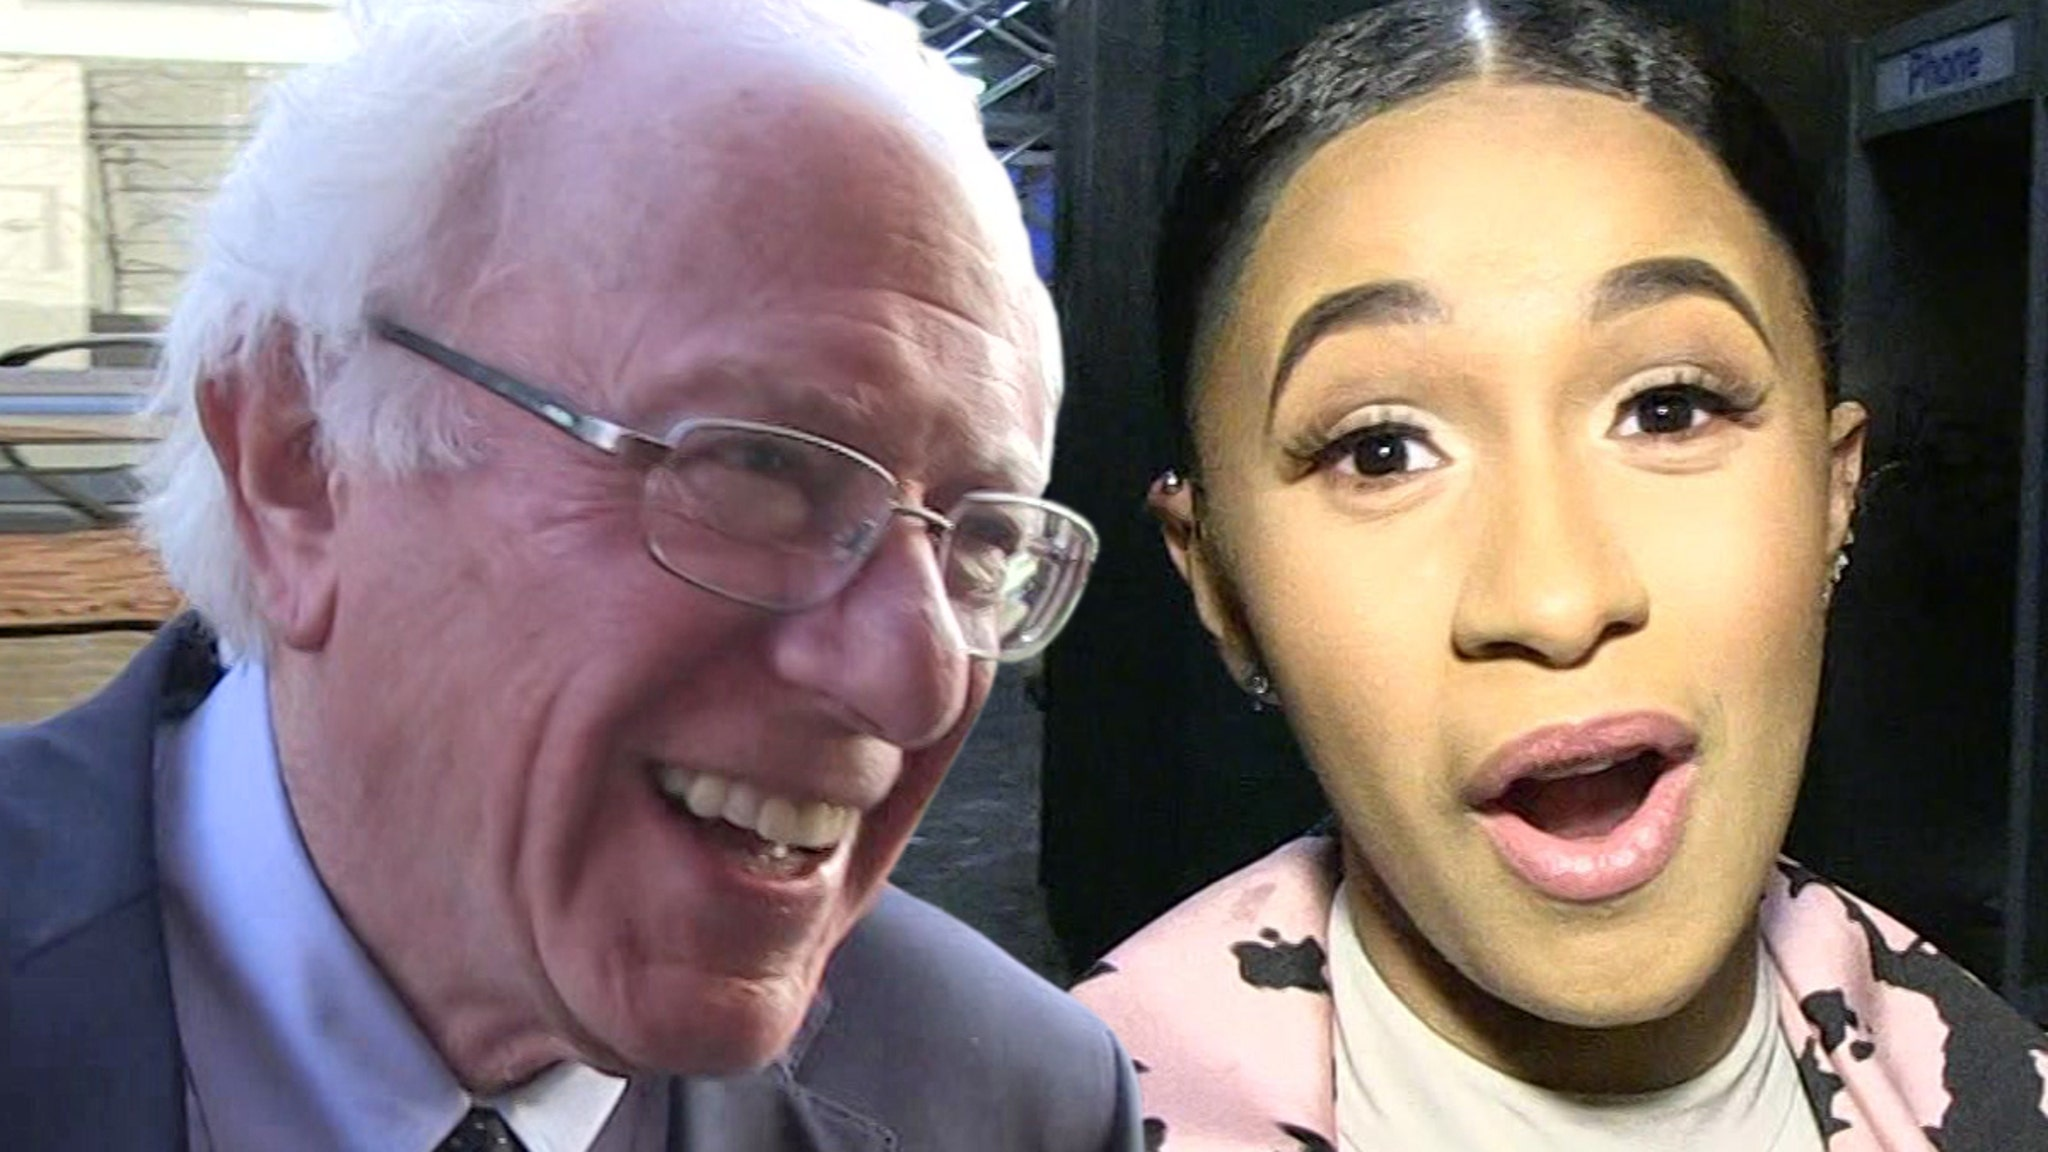 Bernie Sanders Encourages Cardi B to Enter Politics, 'It Would Be Great'